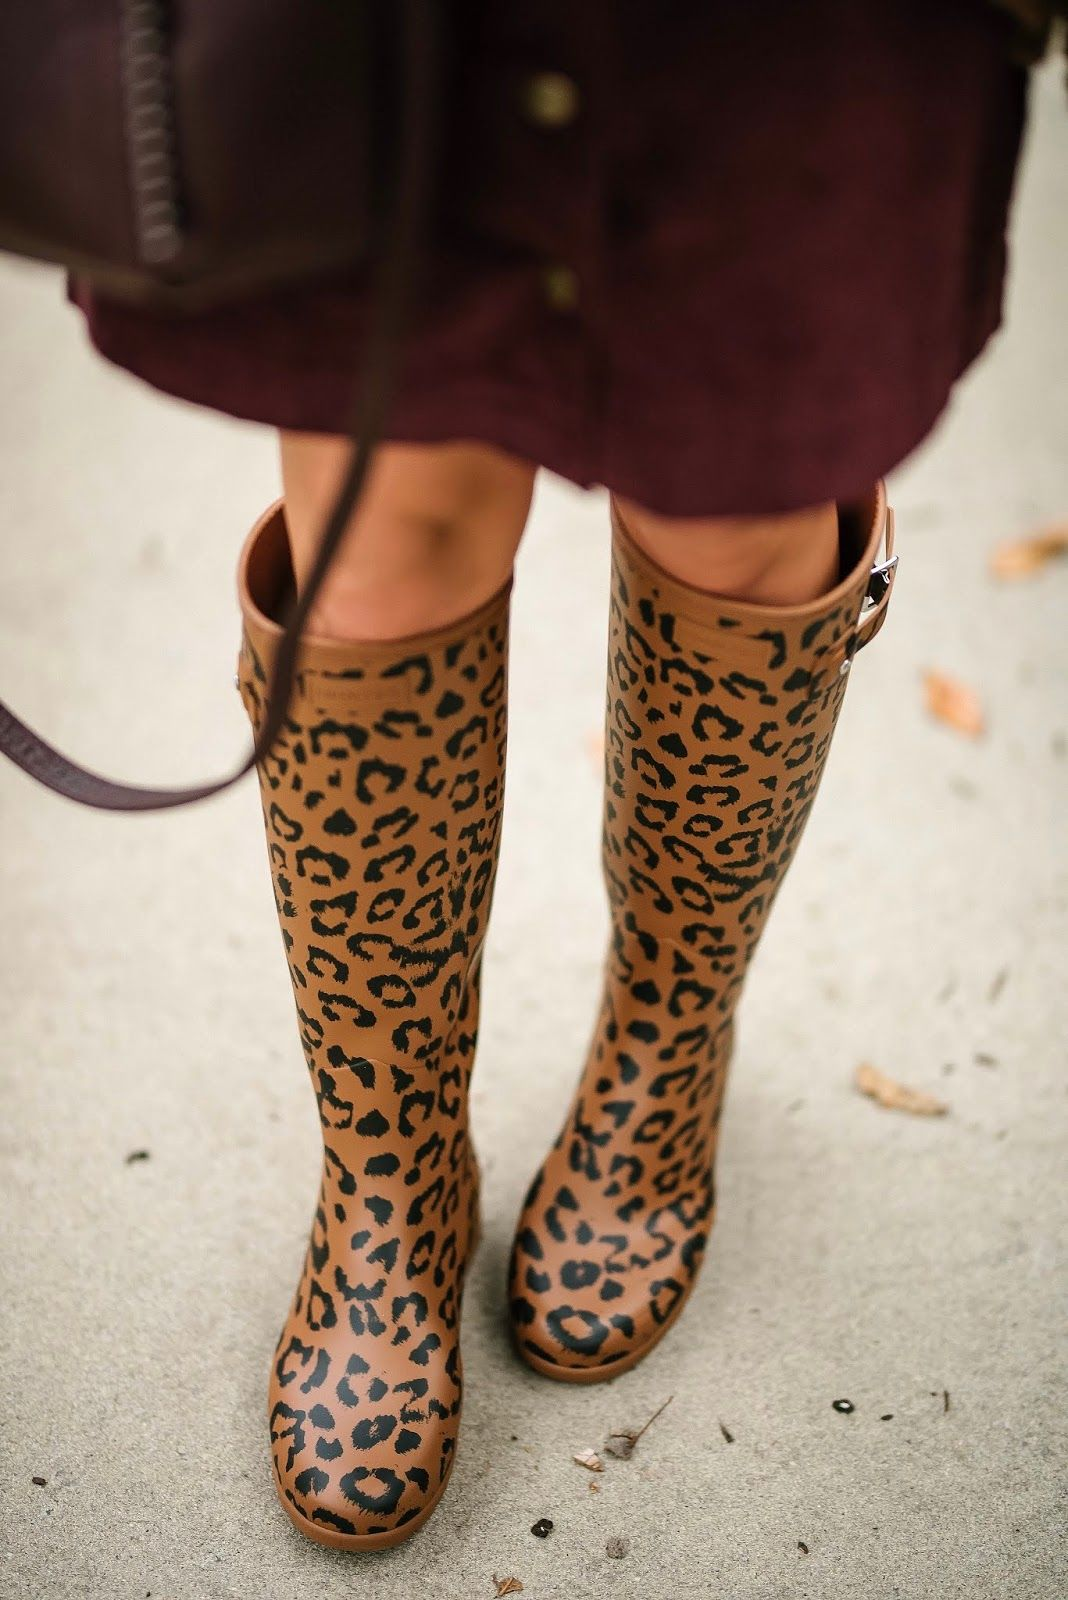 075bf332ea43 Under $30 Cord Skirt, Target Style Cardigan & Leopard Print Hunter Boots -  Something Delightful Blog